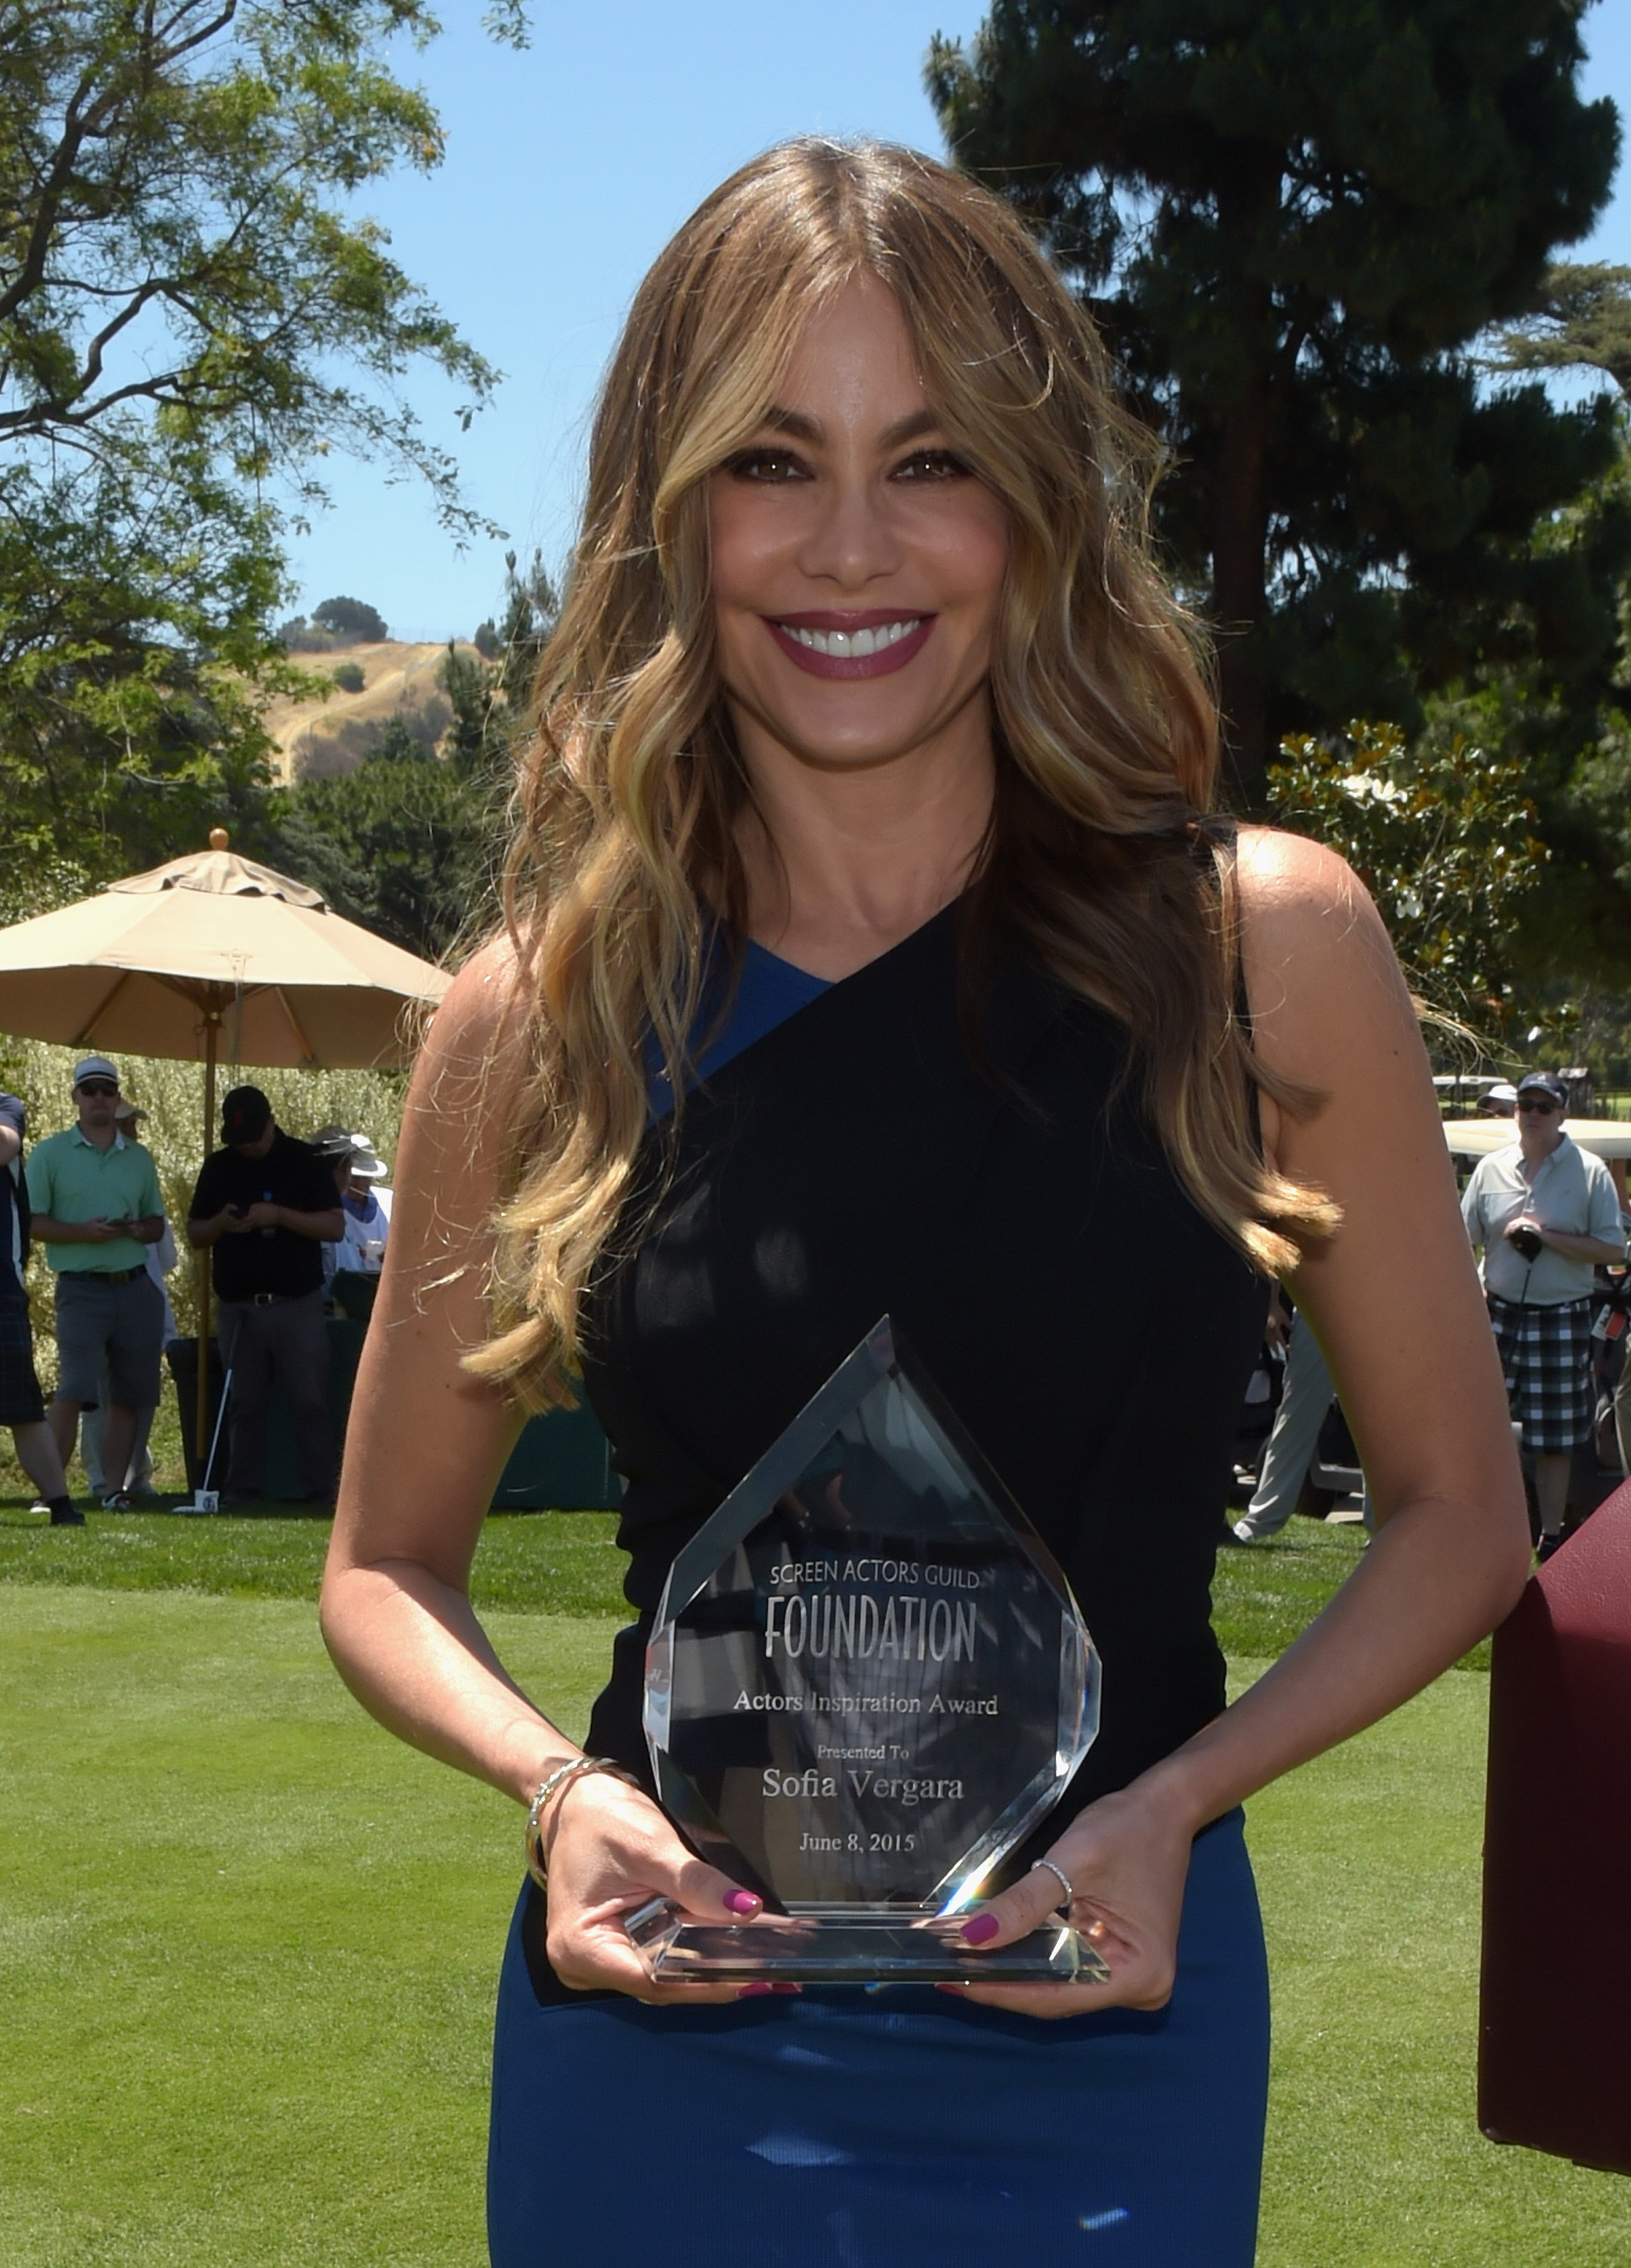 Honoree Sofia Vergara poses with the Inaugural Actors Inspiration Award at the Screen Actors Guild Foundation's 6th Annual Los Angeles Golf Classic on June 8, 2015 in Burbank, California.  (Photo by Jason Kempin/Getty Images for The Screen Actors Guild Foundation)